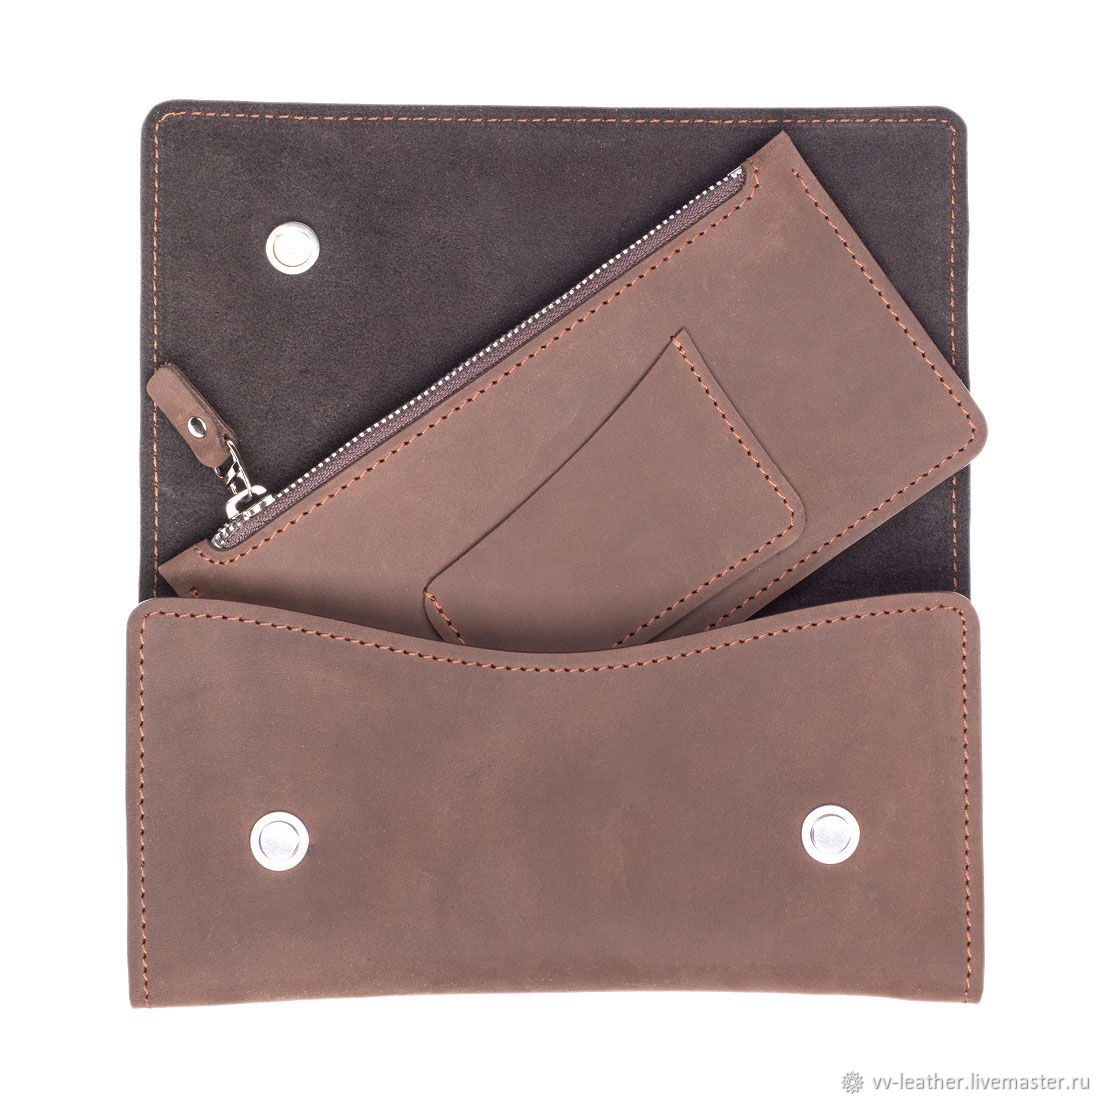 Travel wallet leather, Wallets, Moscow,  Фото №1